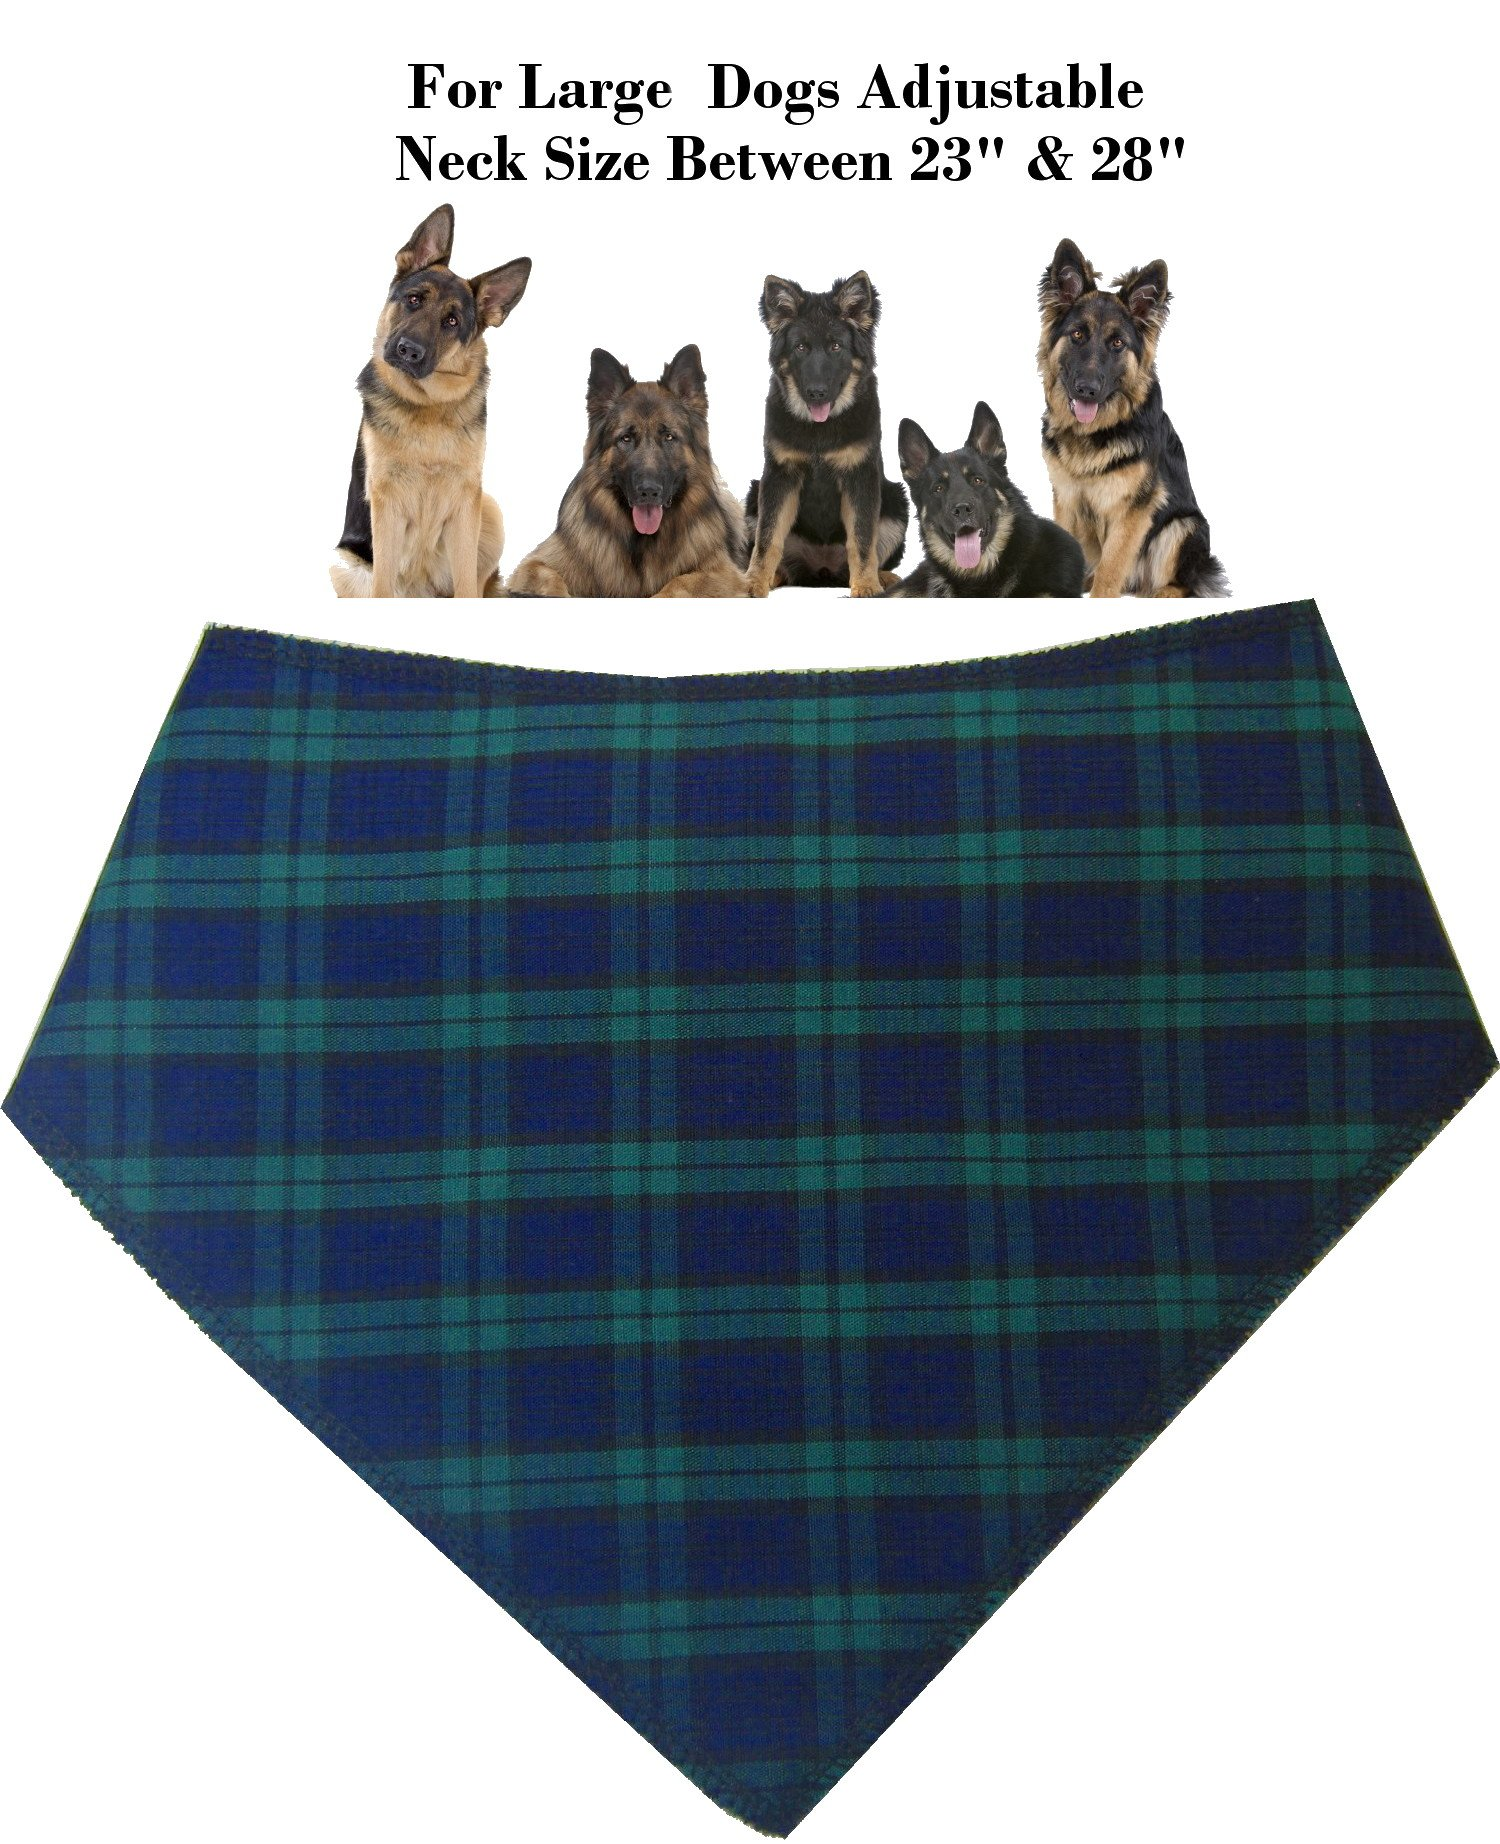 Spoilt Rotten Pets (S4) Branded Blue Tartan Dog Bandana. Adjustable Neck to Fit Large to Extra/Large Dogs – Neck Size 23″ – 28″ Generally Fits Chow Chow, German Shepherd, St Bernard, Dogue de Bordeaux and Similar Sized Dogs.